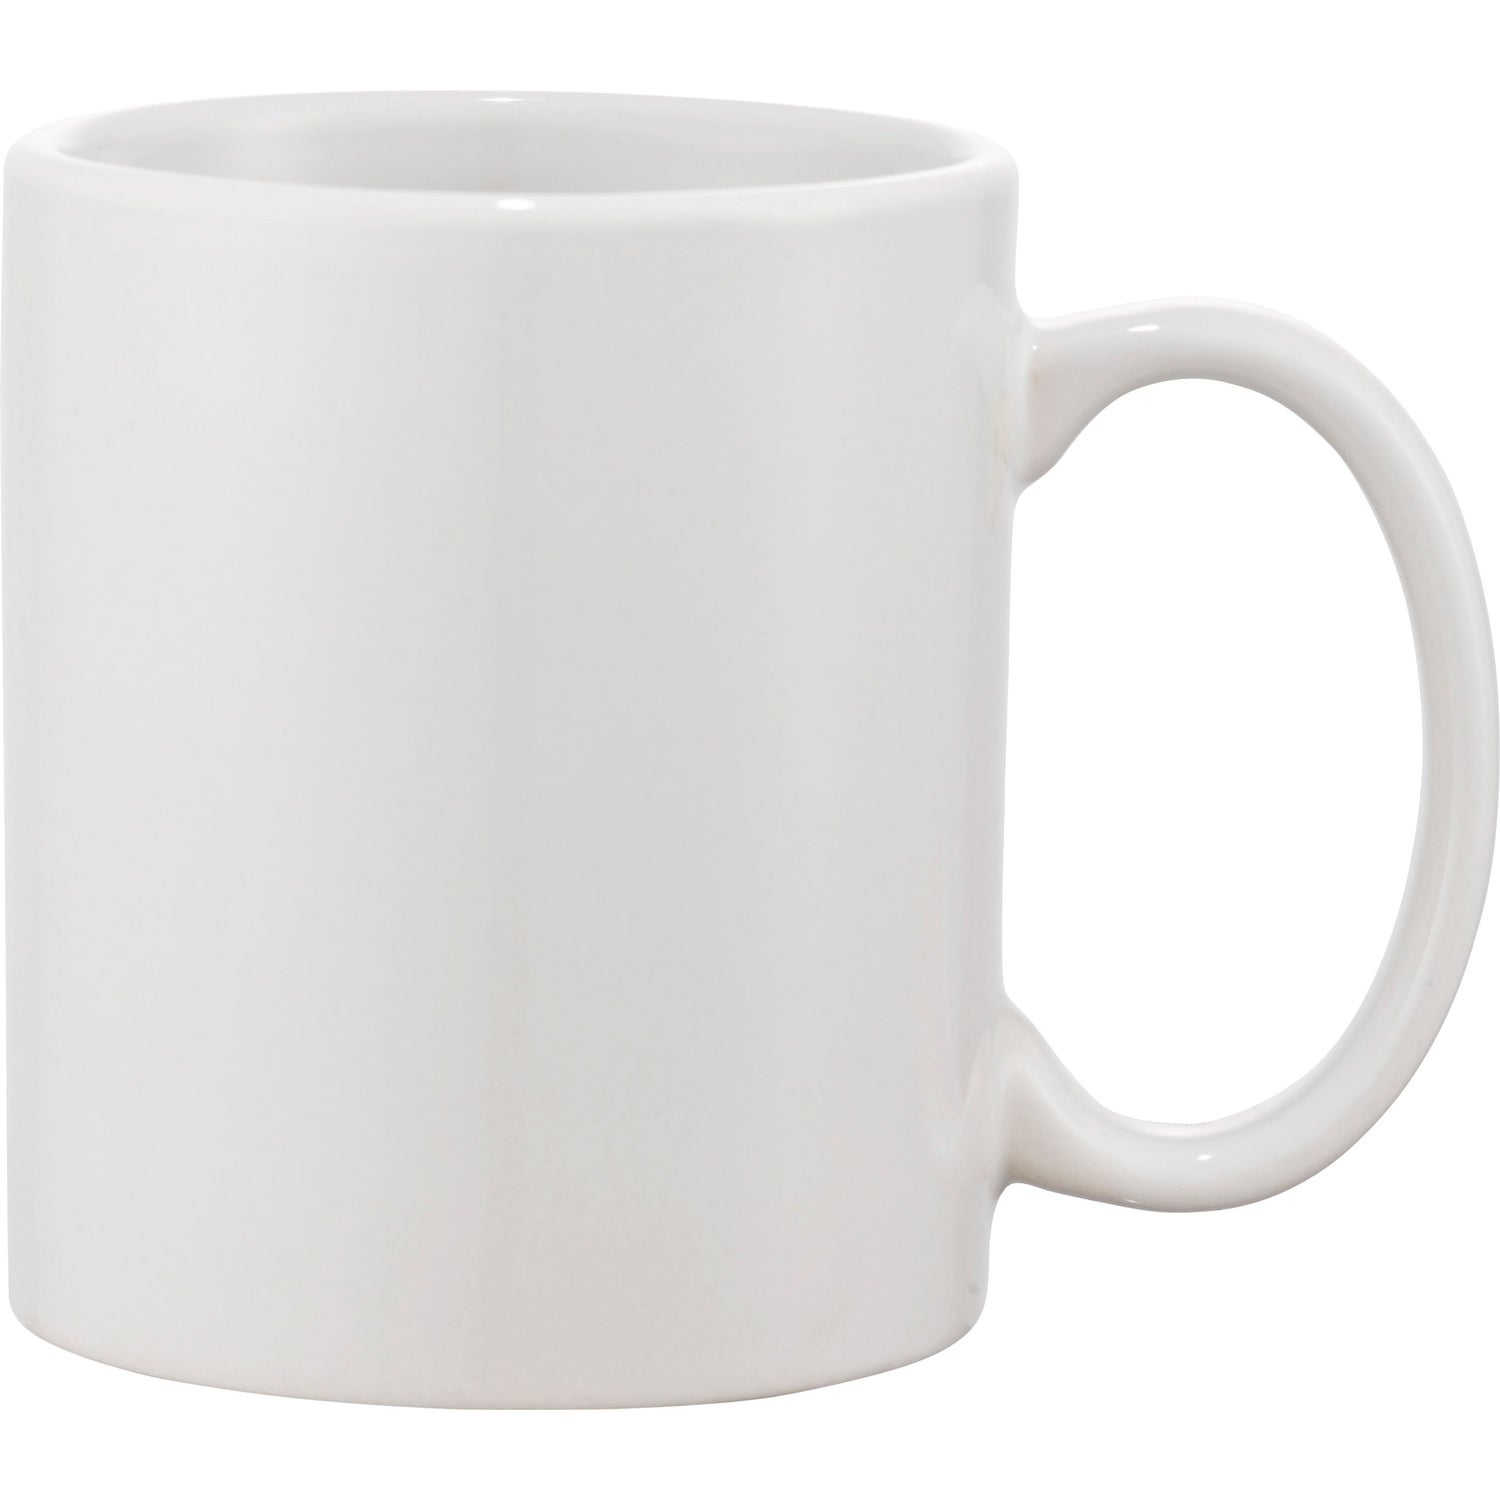 Bounty Ceramic Mug 11 Oz White Custom Ceramic Mugs